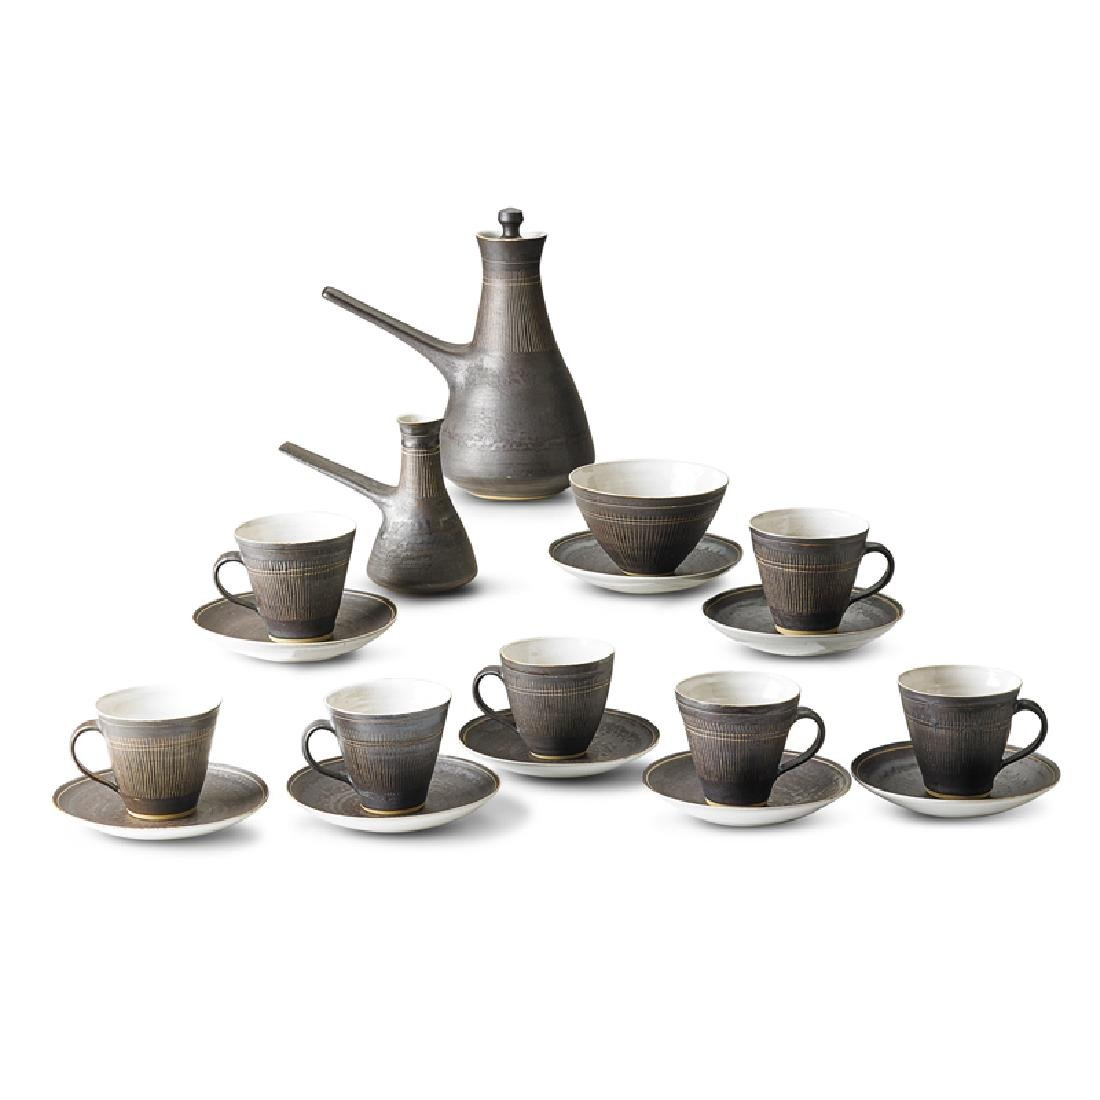 LUCIE RIE Coffee set